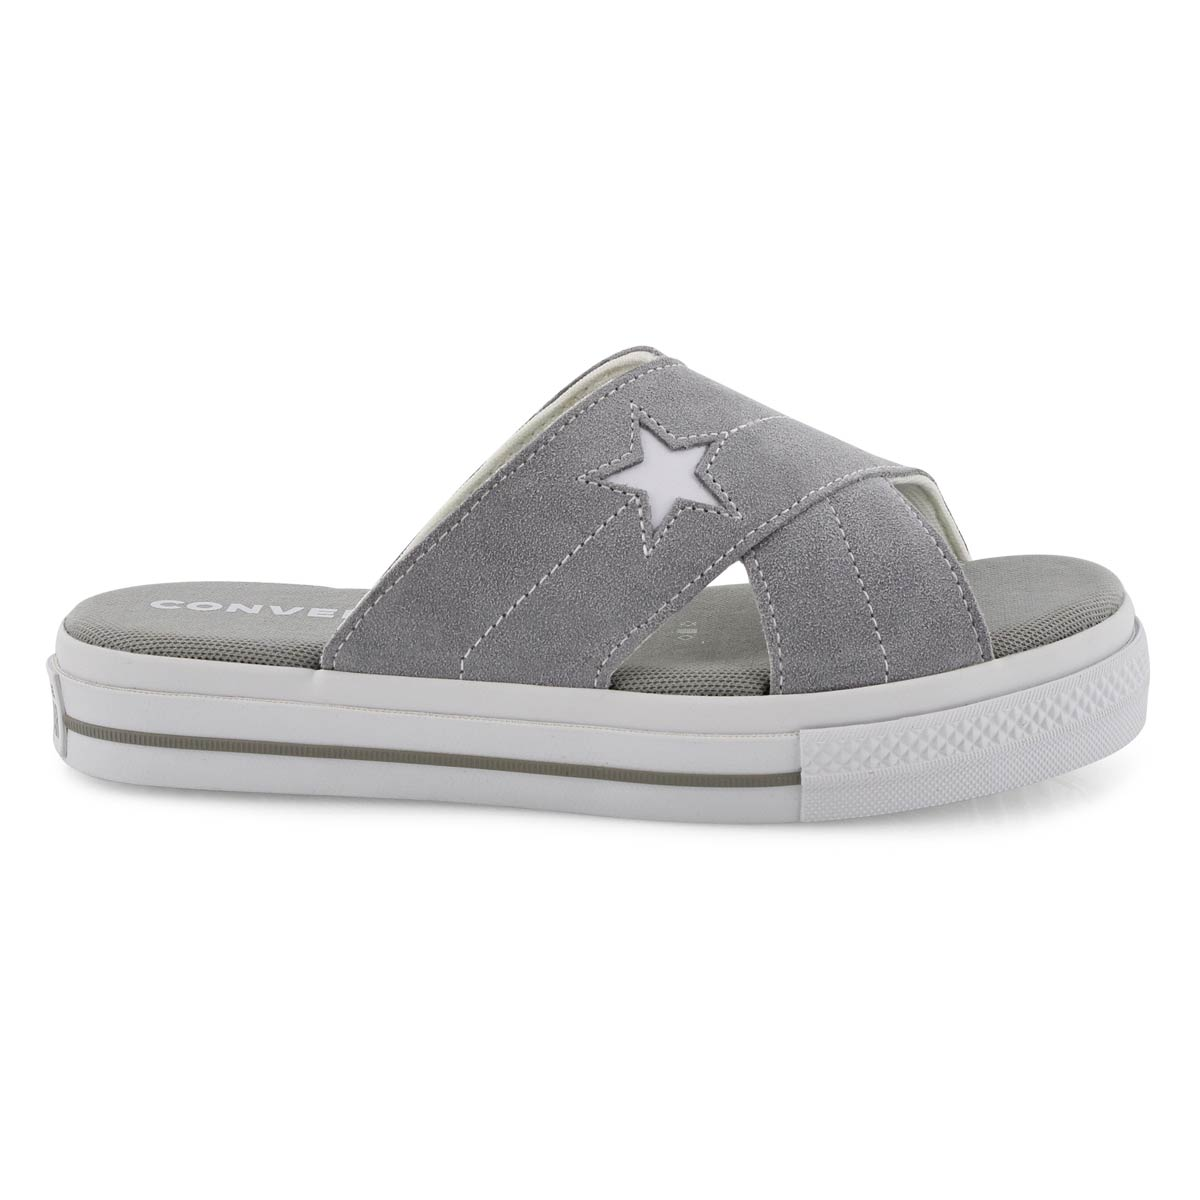 Lds One Star dolphin casual slide sandal